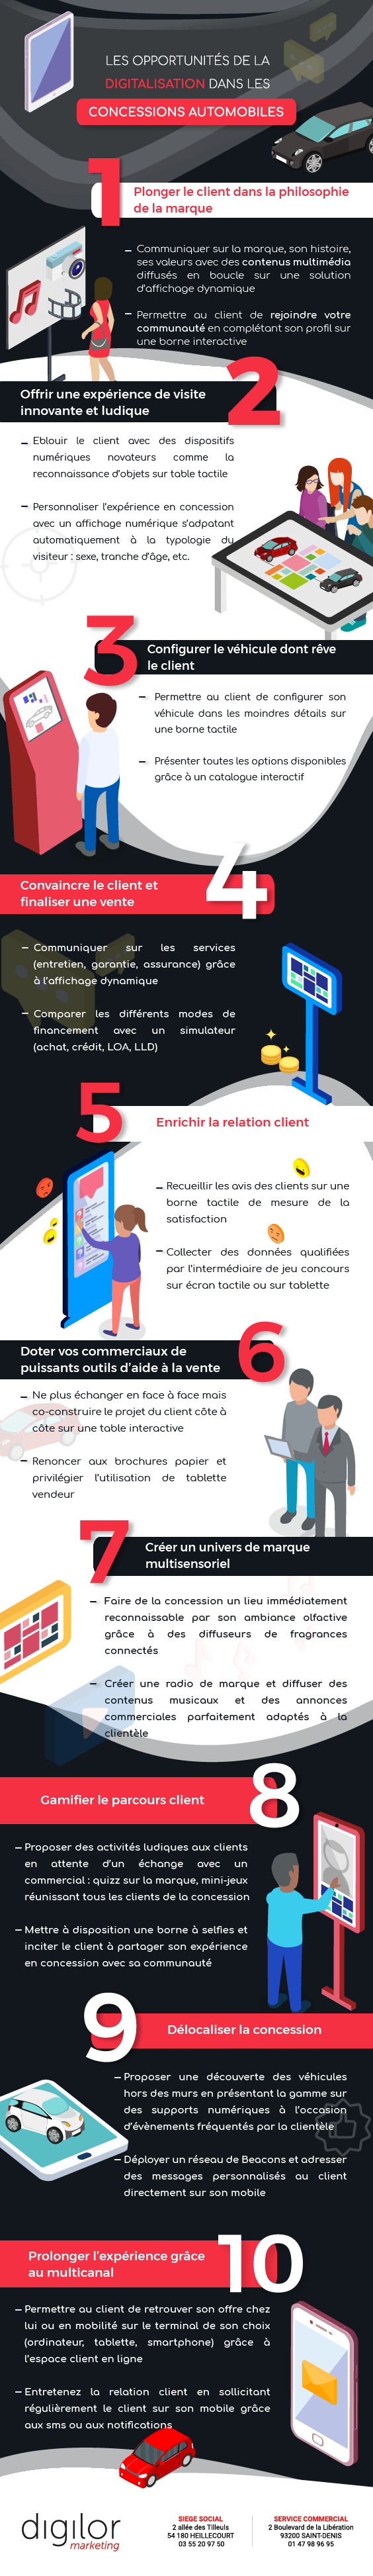 Infographie digitalisation concession automobile